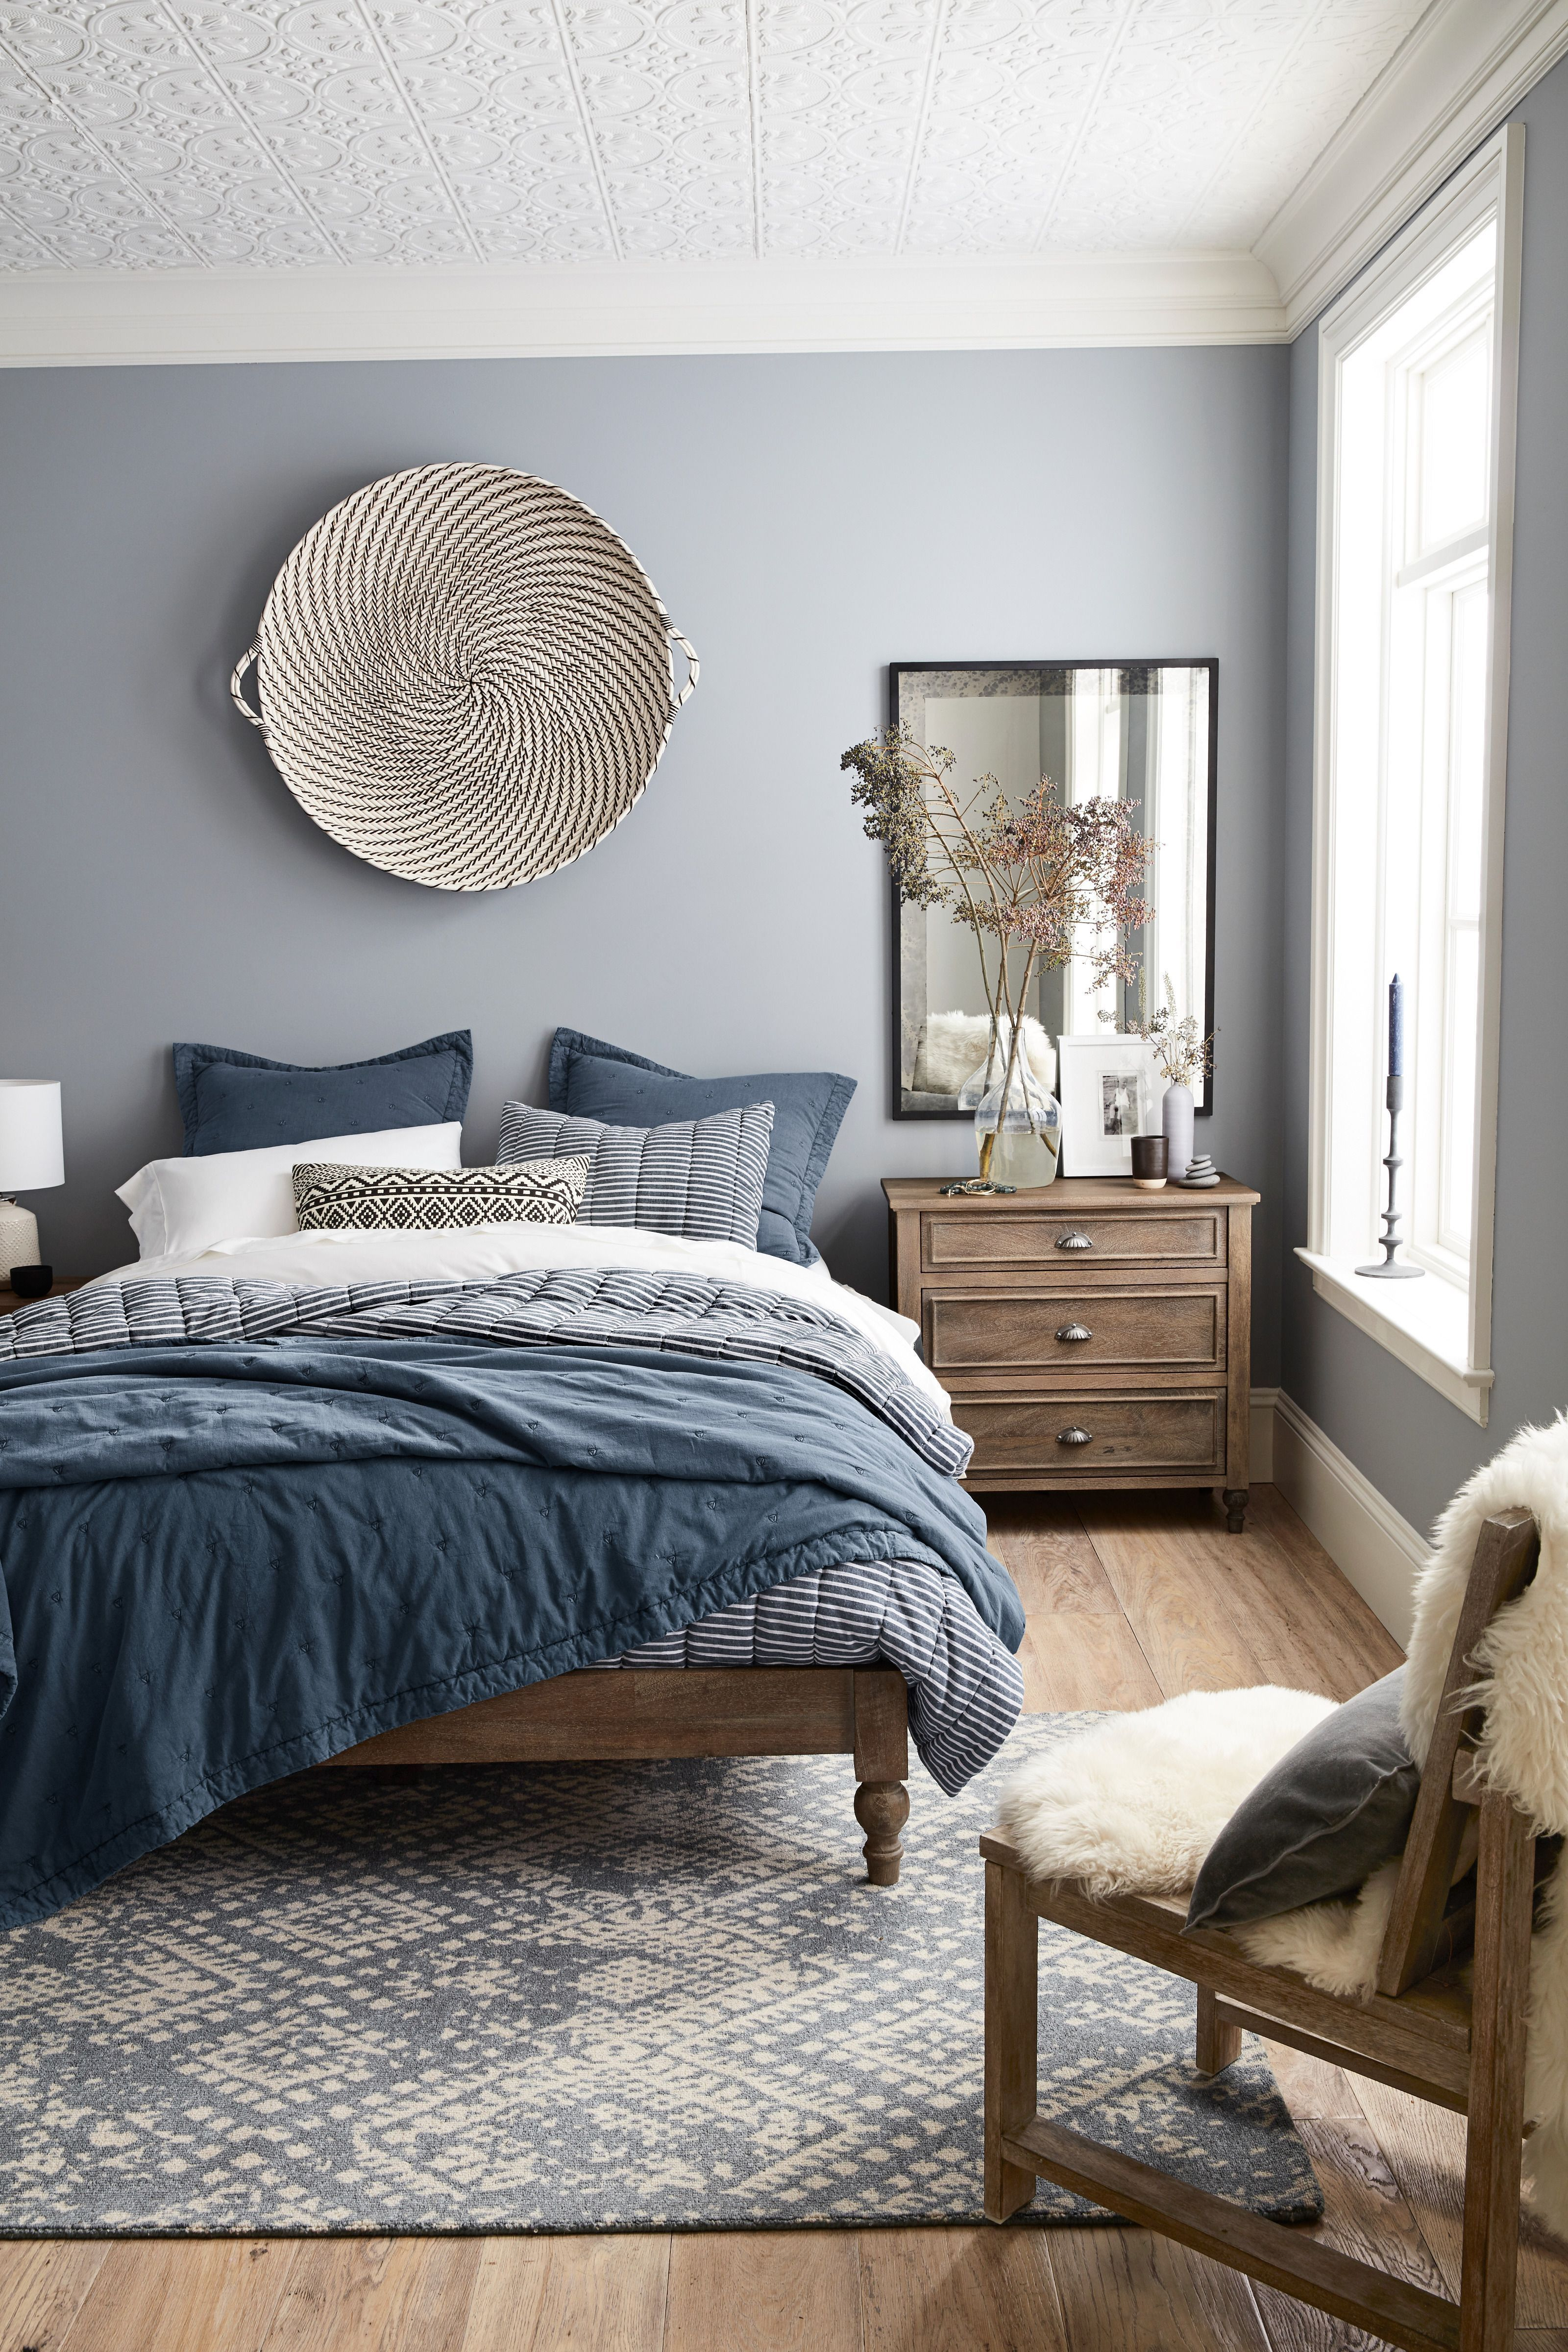 Grey Bedroom Ideas For Small Rooms 2021 In 2020 Blue Master Bedroom Small Room Bedroom Small Master Bedroom